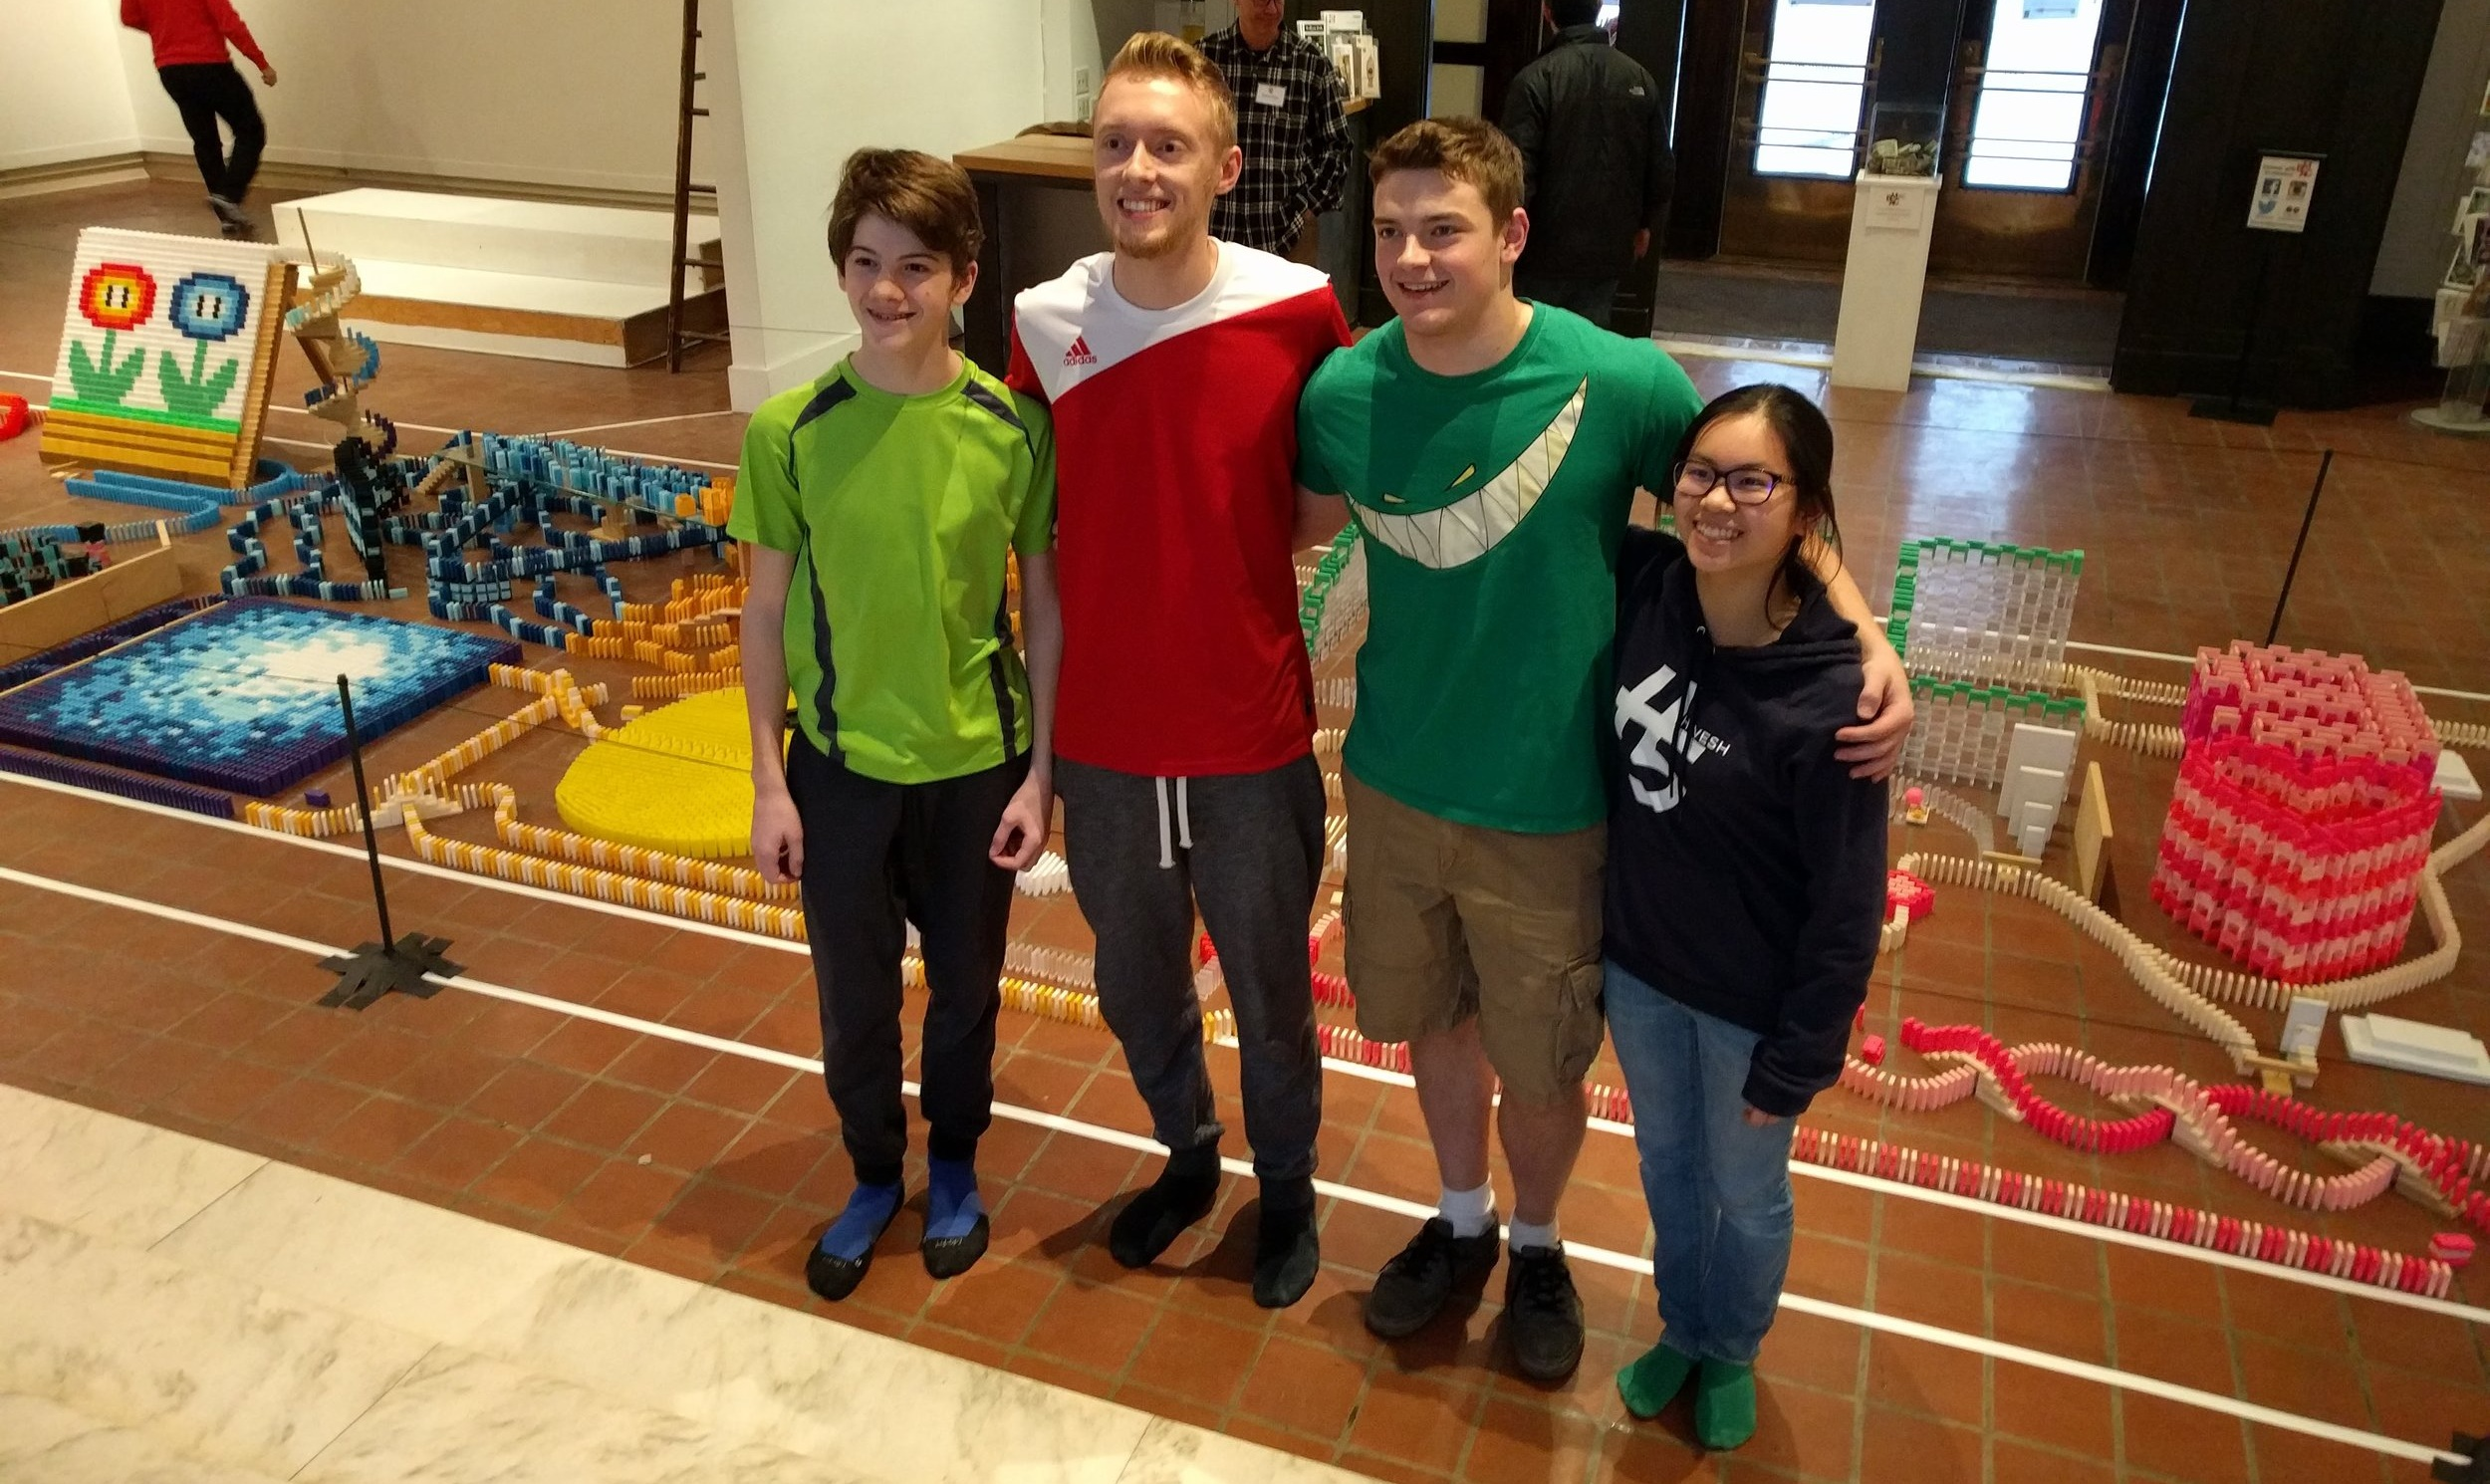 The domino artists from BMAC's 9th Annual Domino Toppling, 2016